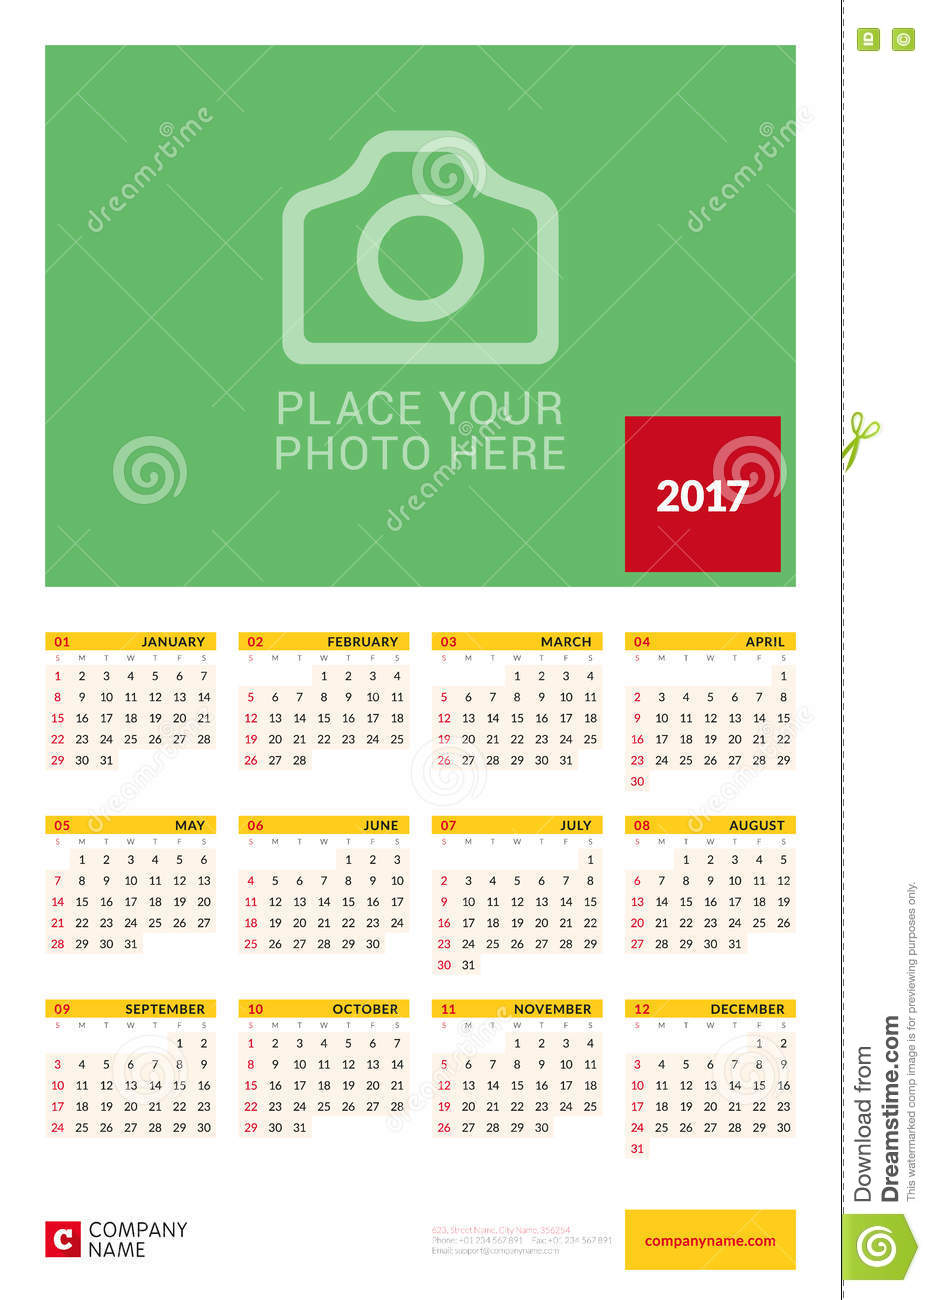 Calendar Poster Template : Wall yearly calendar poster for year vector design